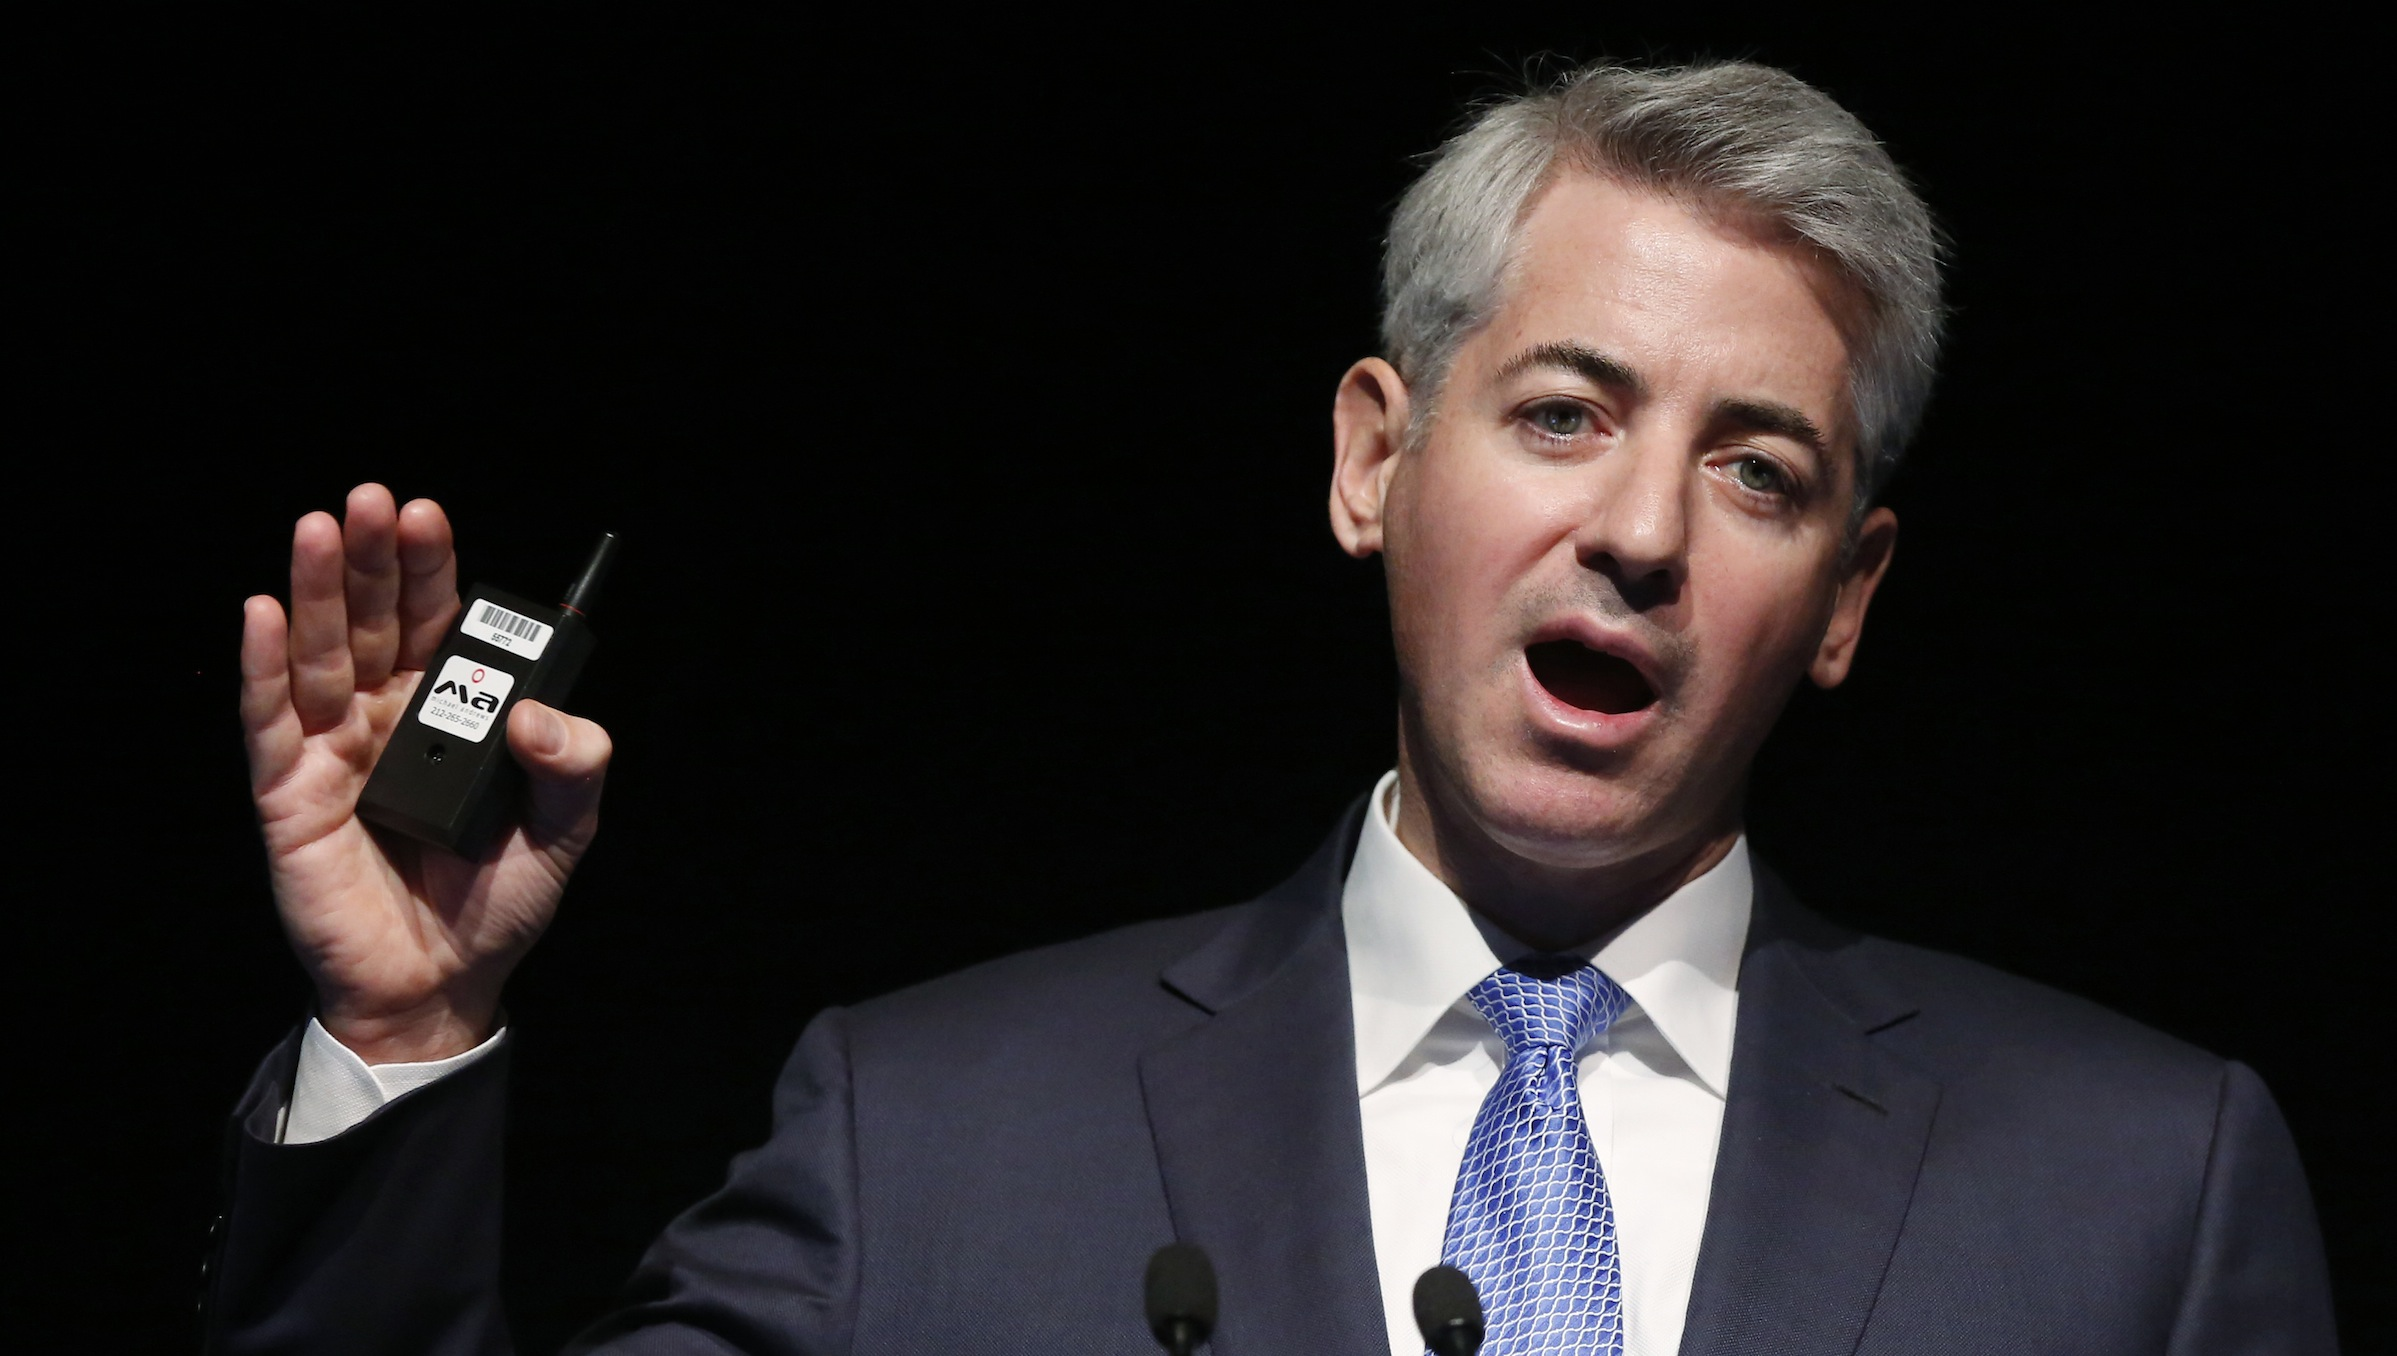 Bill Ackman, chief executive officer and portfolio manager of Pershing Square Capital Management, L.P., speaks at the Ira Sohn Investment Conference in New York, May 8, 2013. REUTERS/Brendan McDermid (UNITED STATES - Tags: BUSINESS) - RTXZFGG